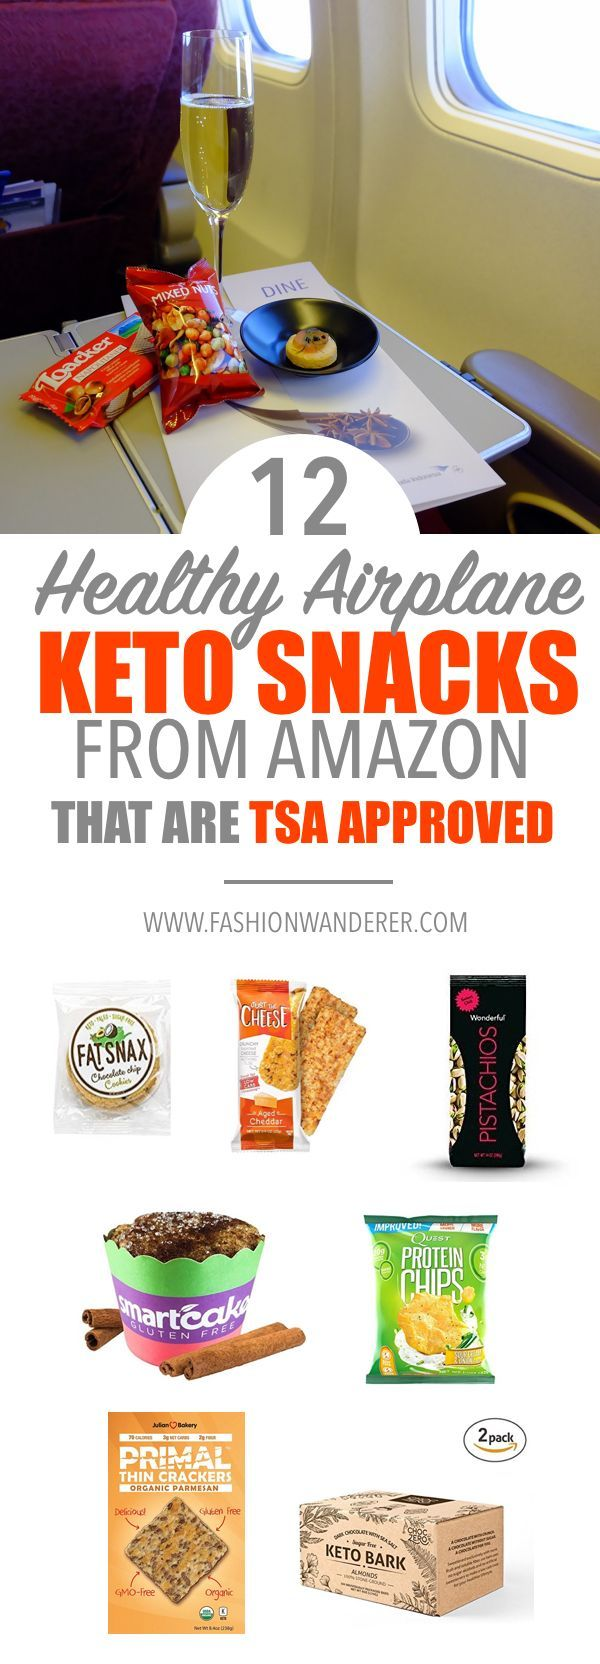 These Healthy Airplane Keto Snacks From Amazon That Are Tsa Approved Are The Best I Didn T K Keto Snacks Healthy Snacks For Diabetics Healthy Afternoon Snacks